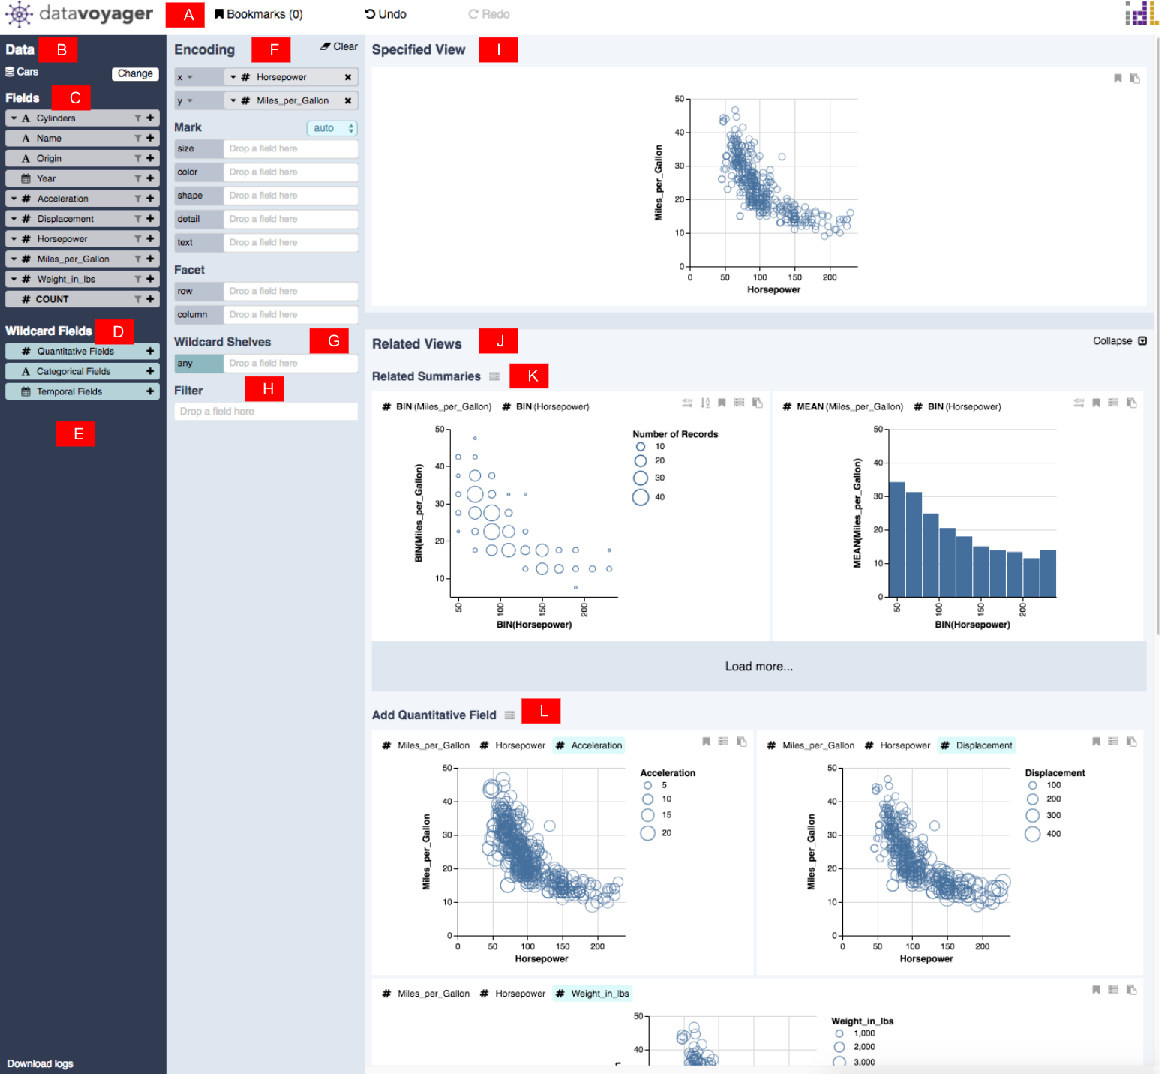 Figure 2 1 from JupyterLab_Voyager: a Data Visualization Enhancement